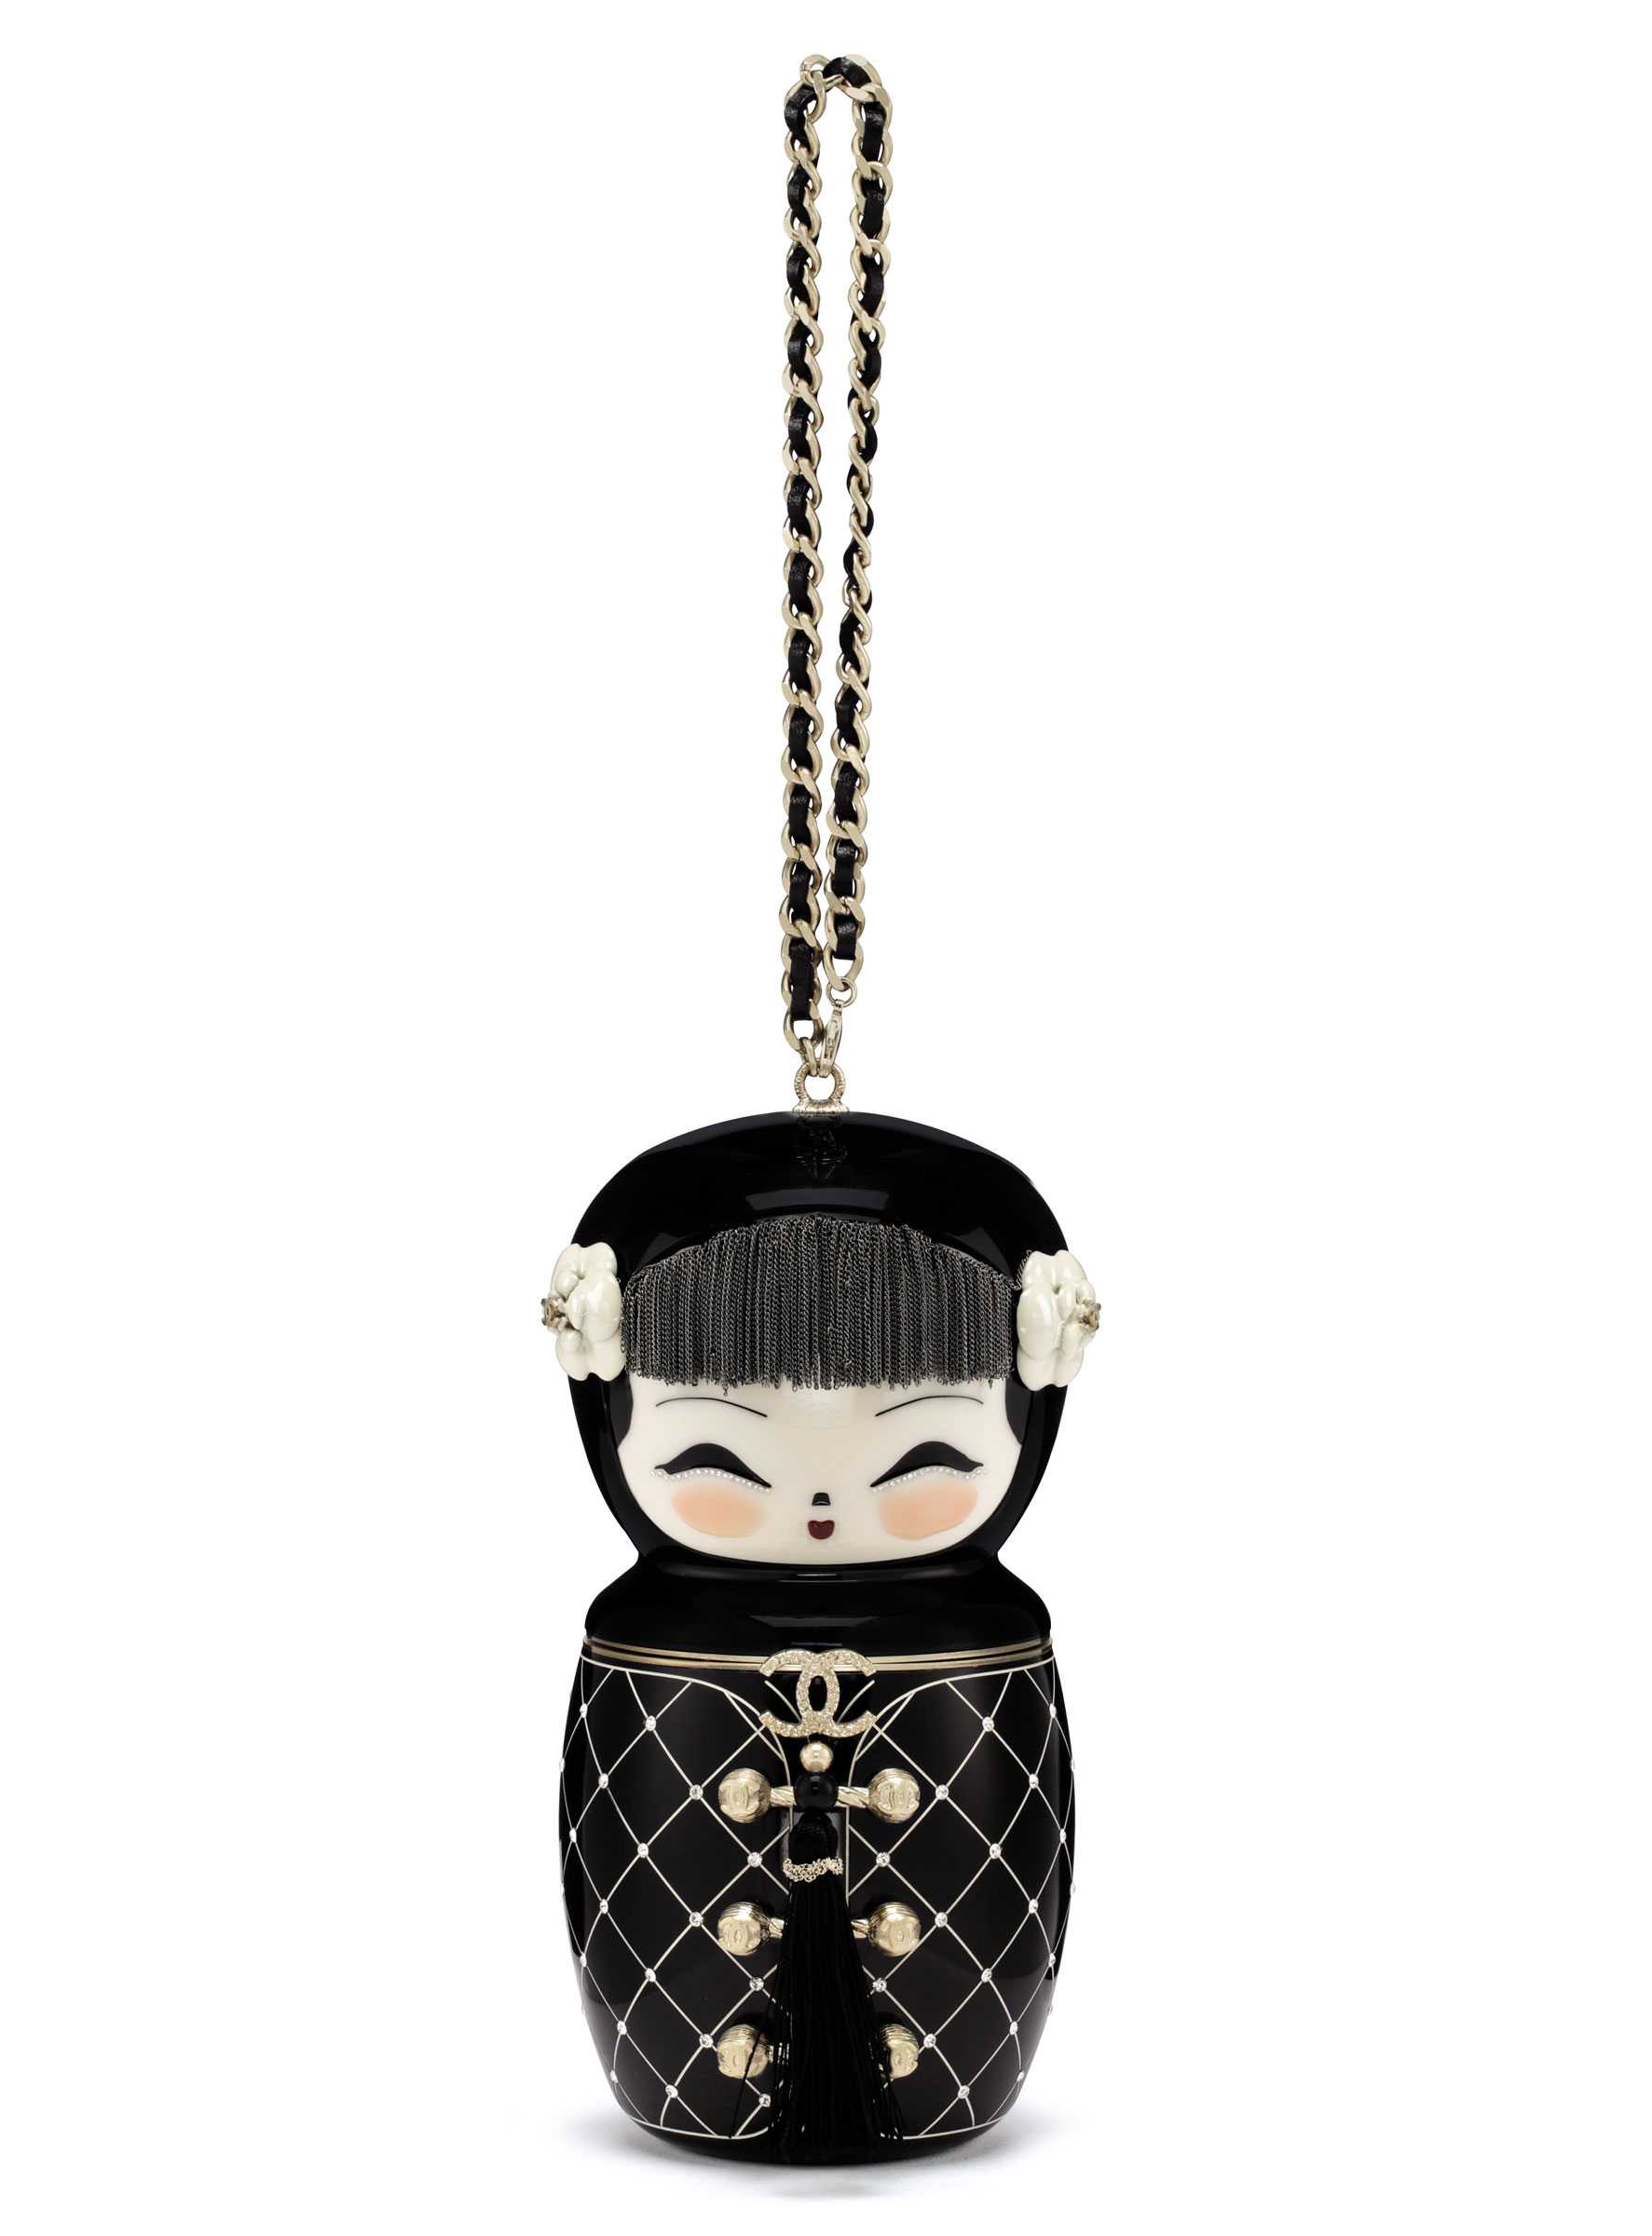 A Métiers dArt Paris-Shanghai black lucite Matryoshka evening bag with gold hardware, Chanel, 2010. 12 w x 19 h x 7 d cm. Sold for $32,500 on 19 June 2018, online